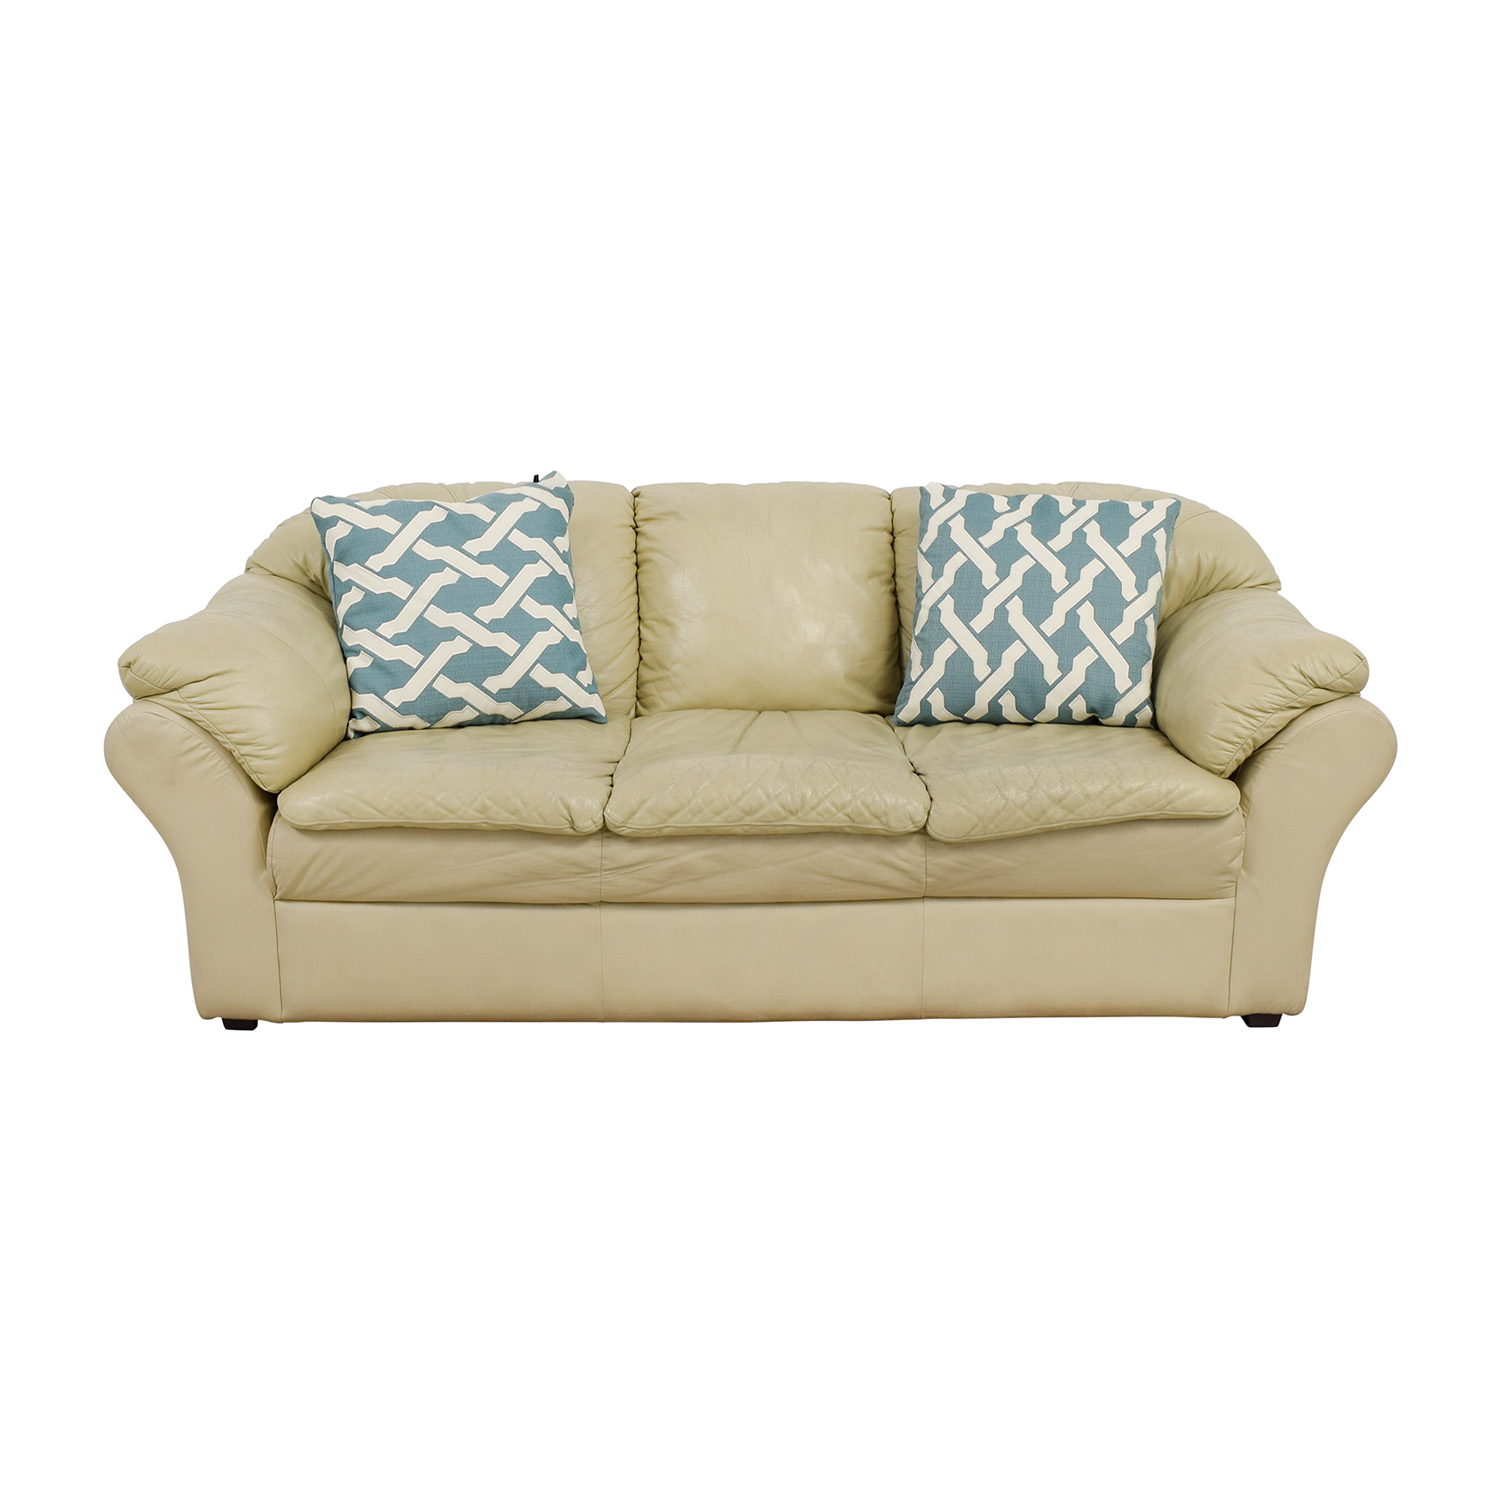 Mals Brooklyn Furniture Beige Sofa / Sofas